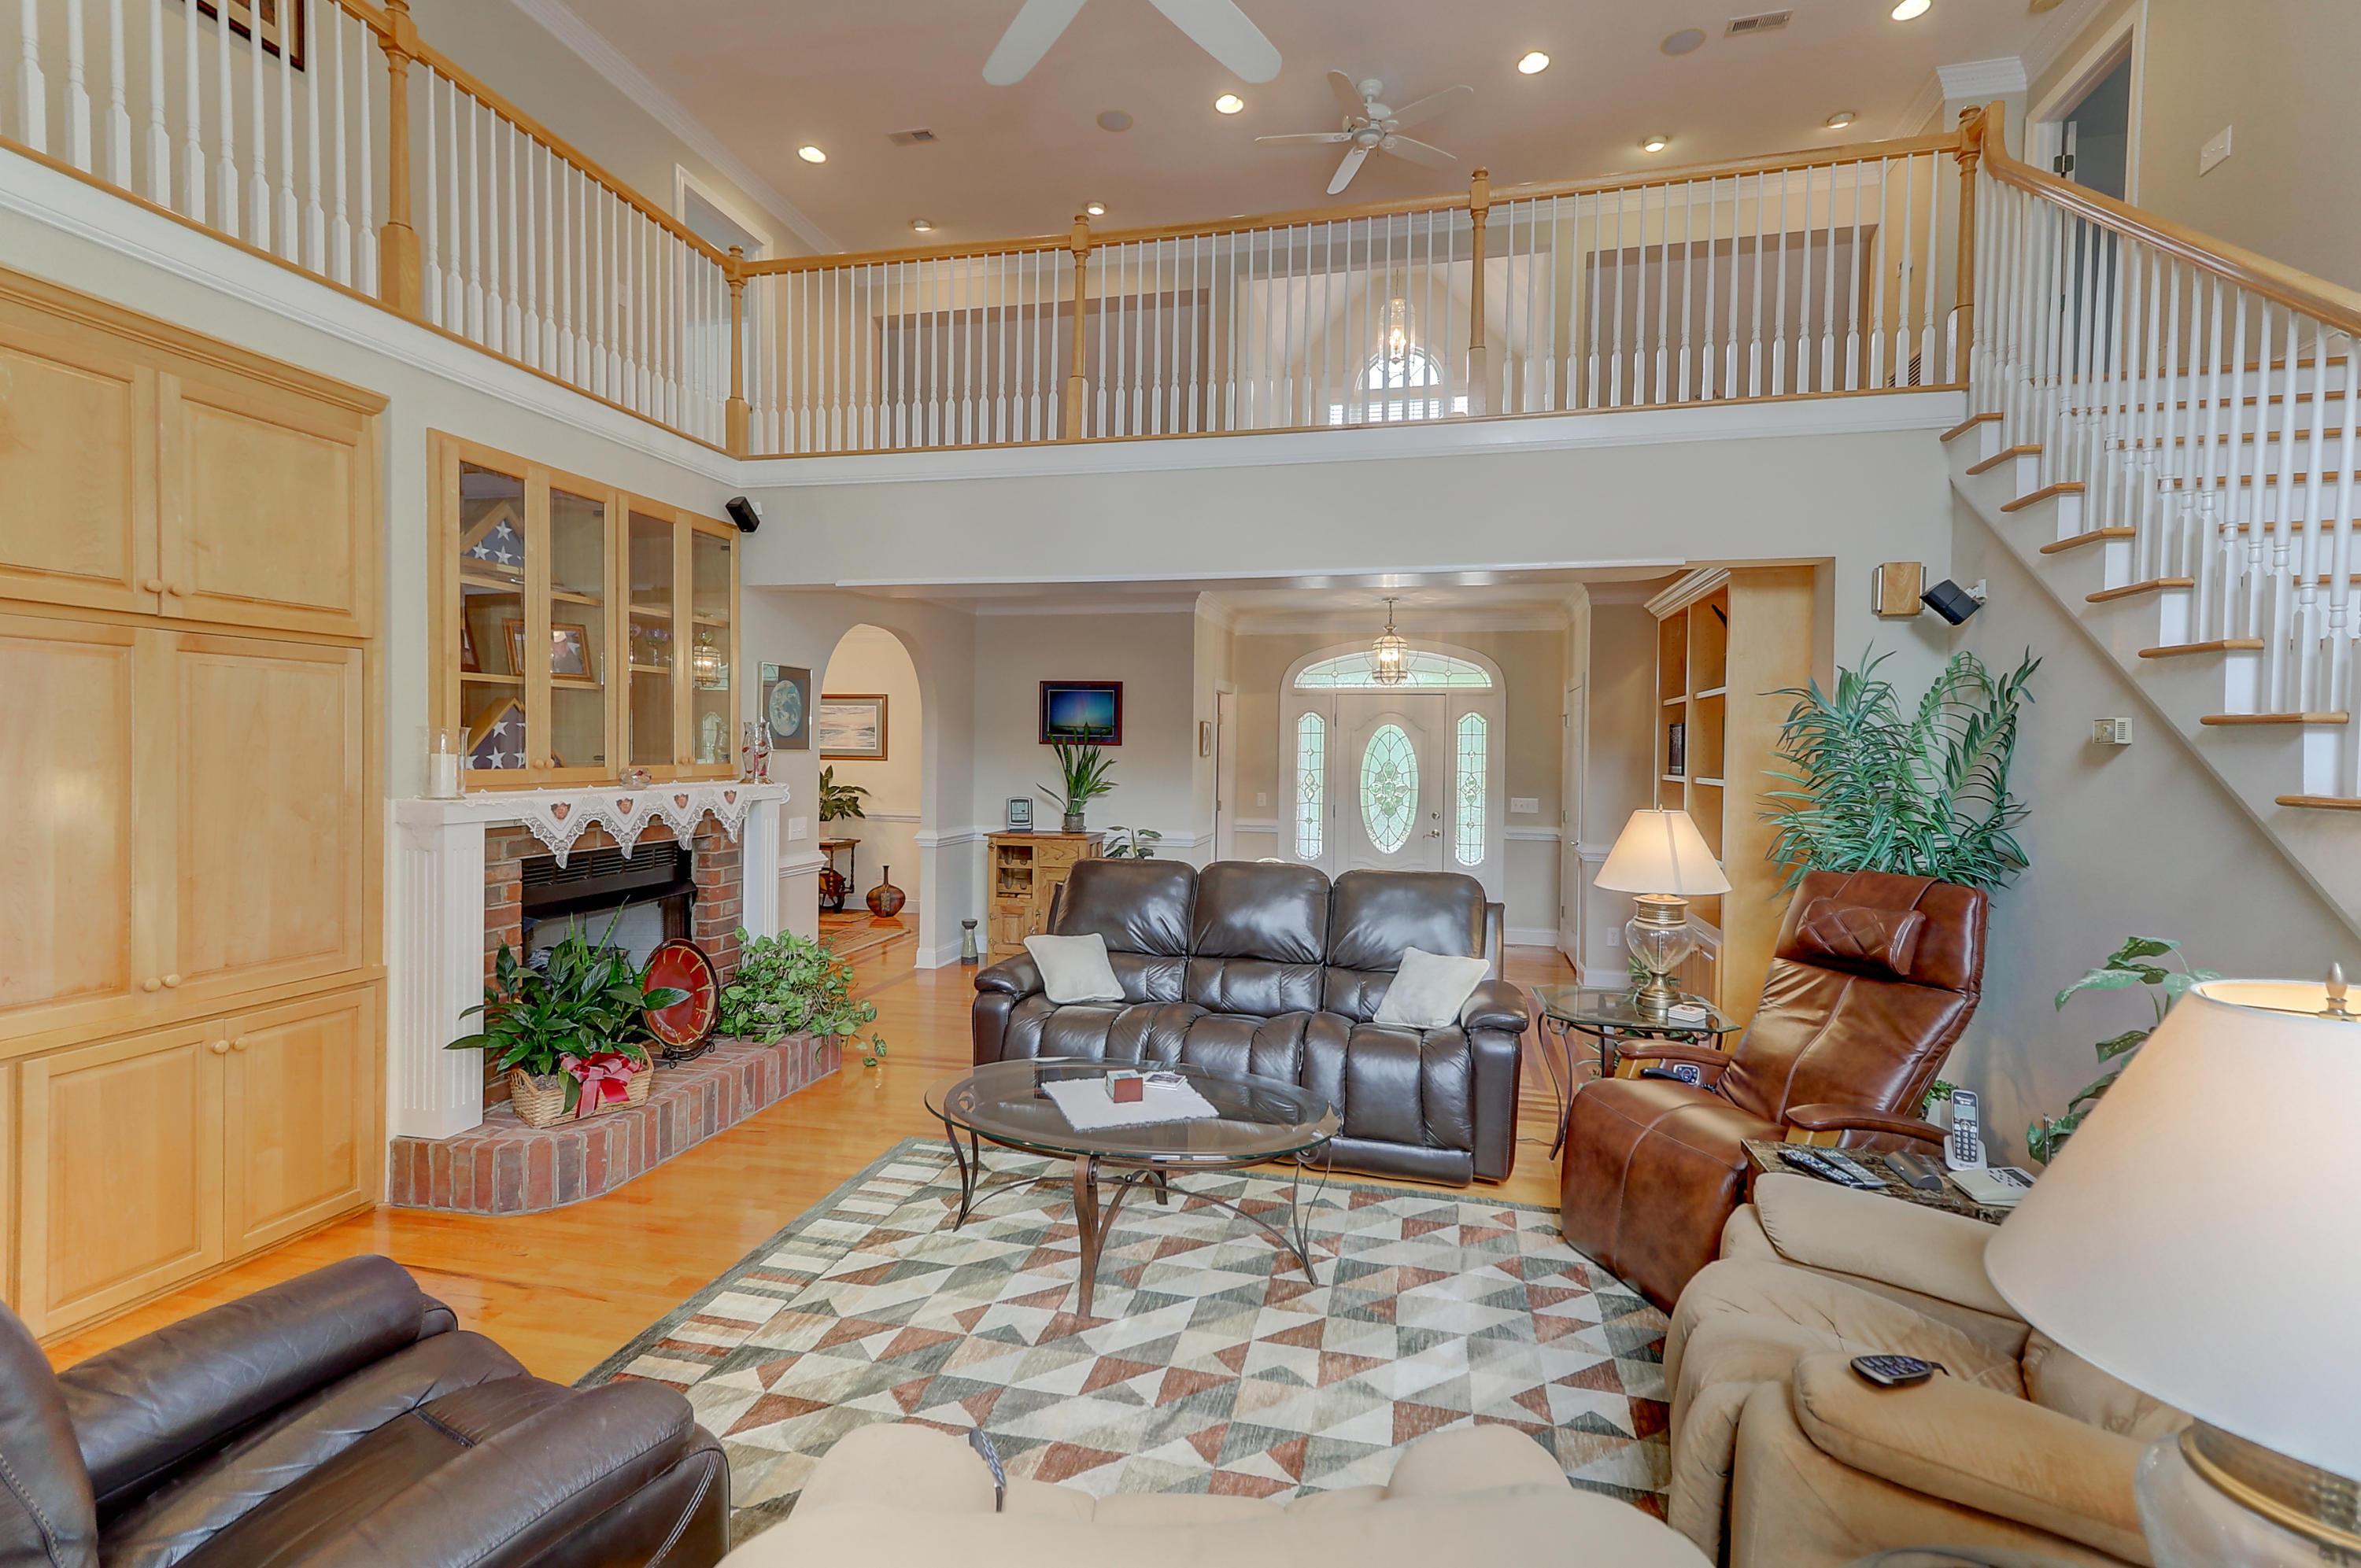 Coosaw Creek Country Club Homes For Sale - 8700 Fairway Woods, North Charleston, SC - 12